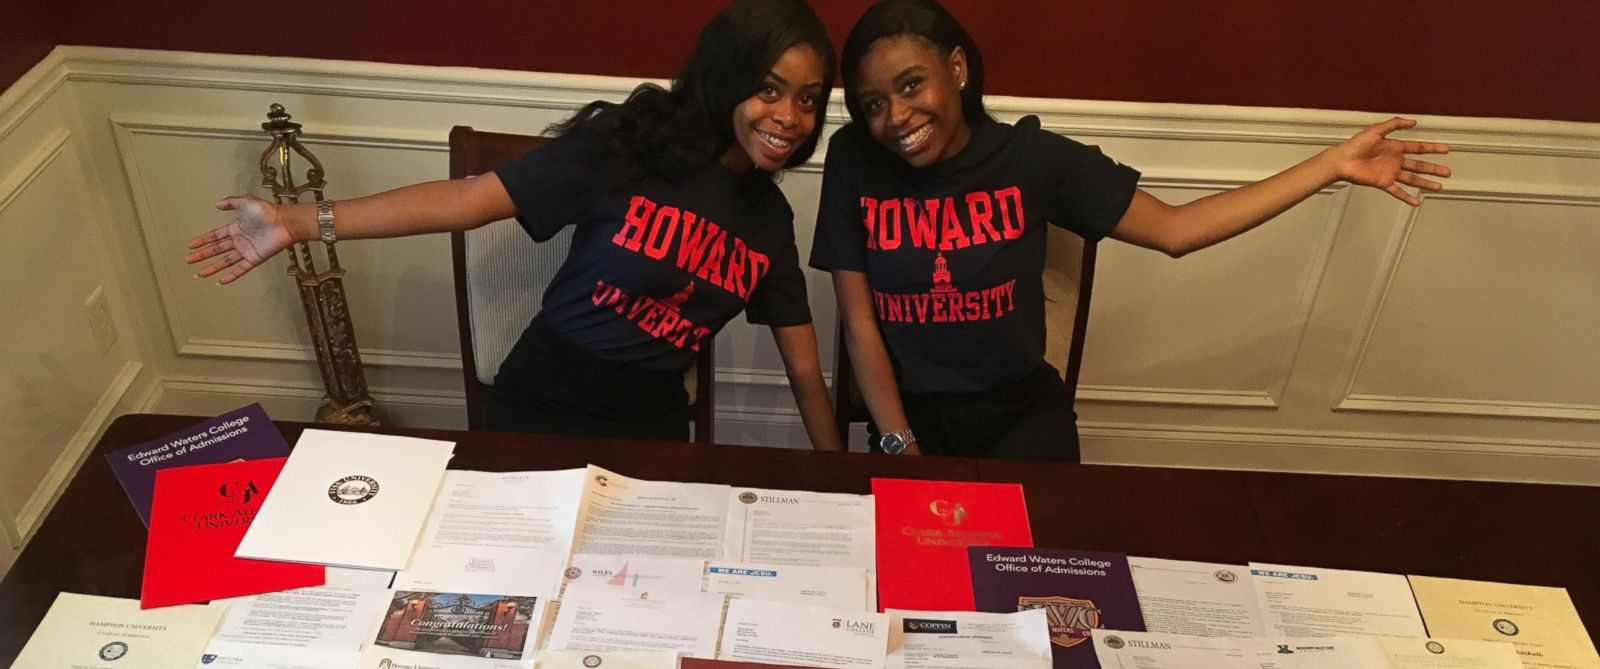 twins get accepted into 40 colleges between them receiving 900k photo 17 year old twin sisters akhya c and akhea s